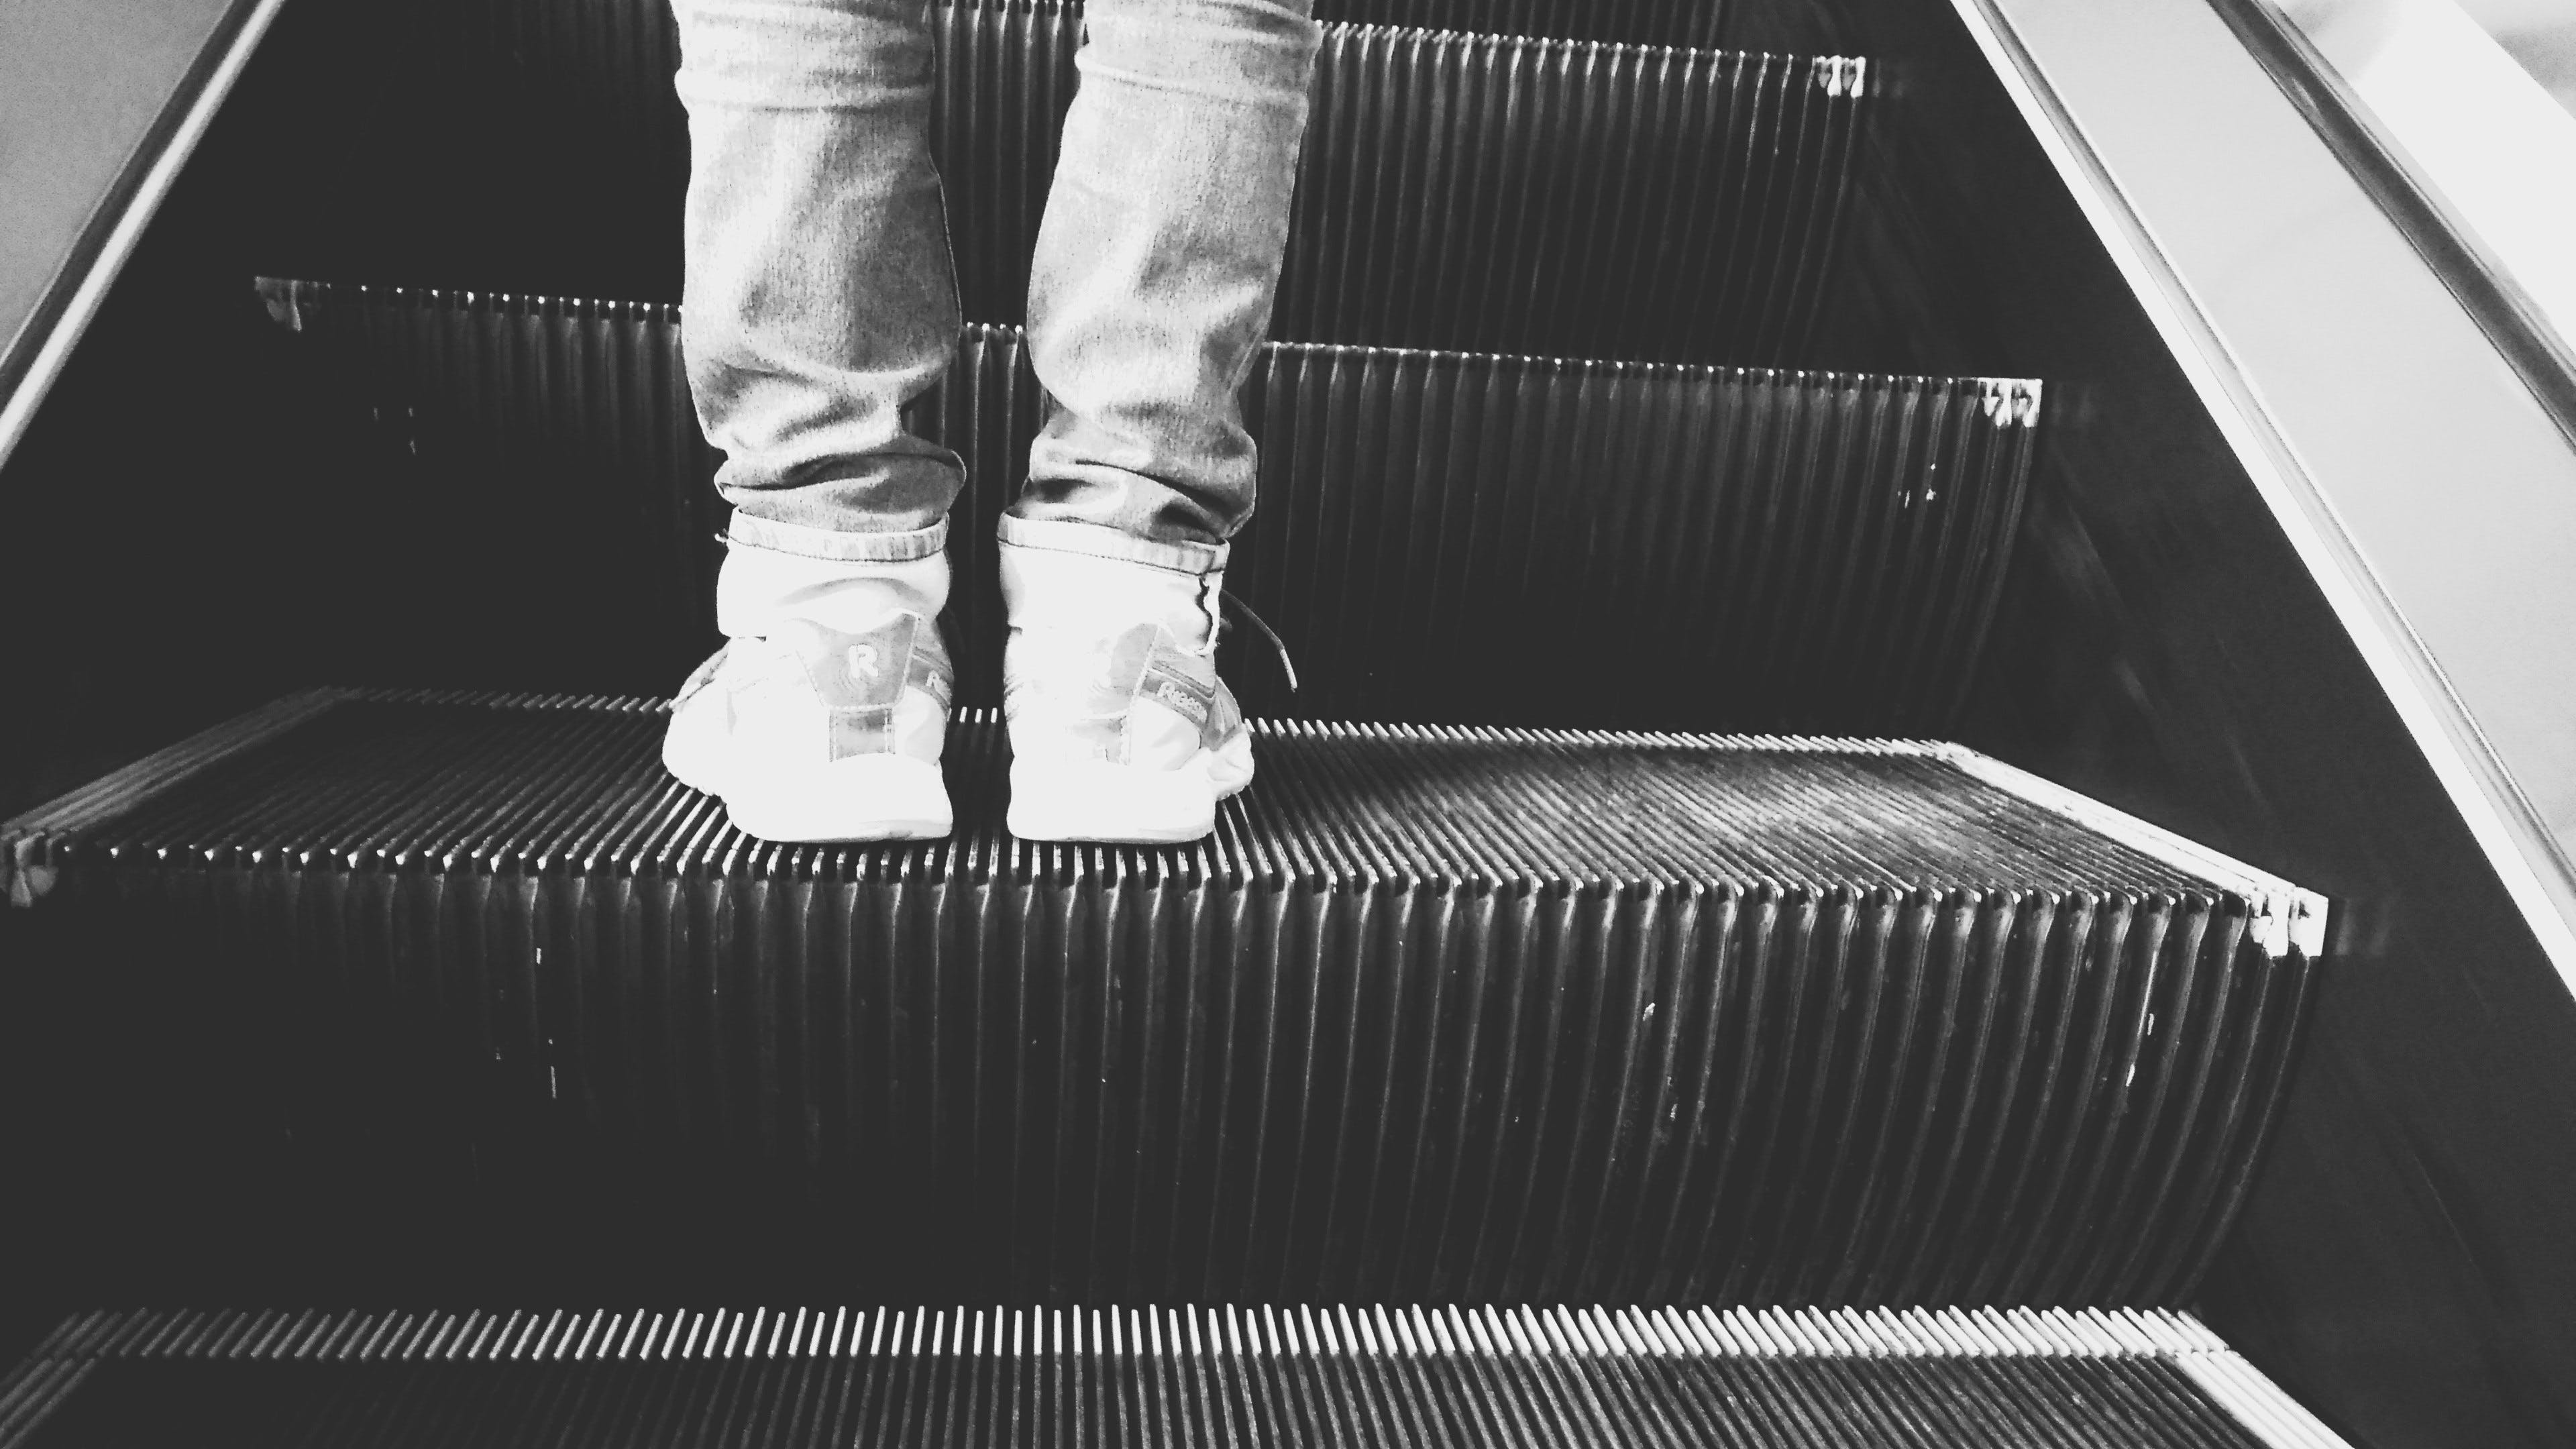 Free stock photo of black-and-white, feet, shoes, escalator